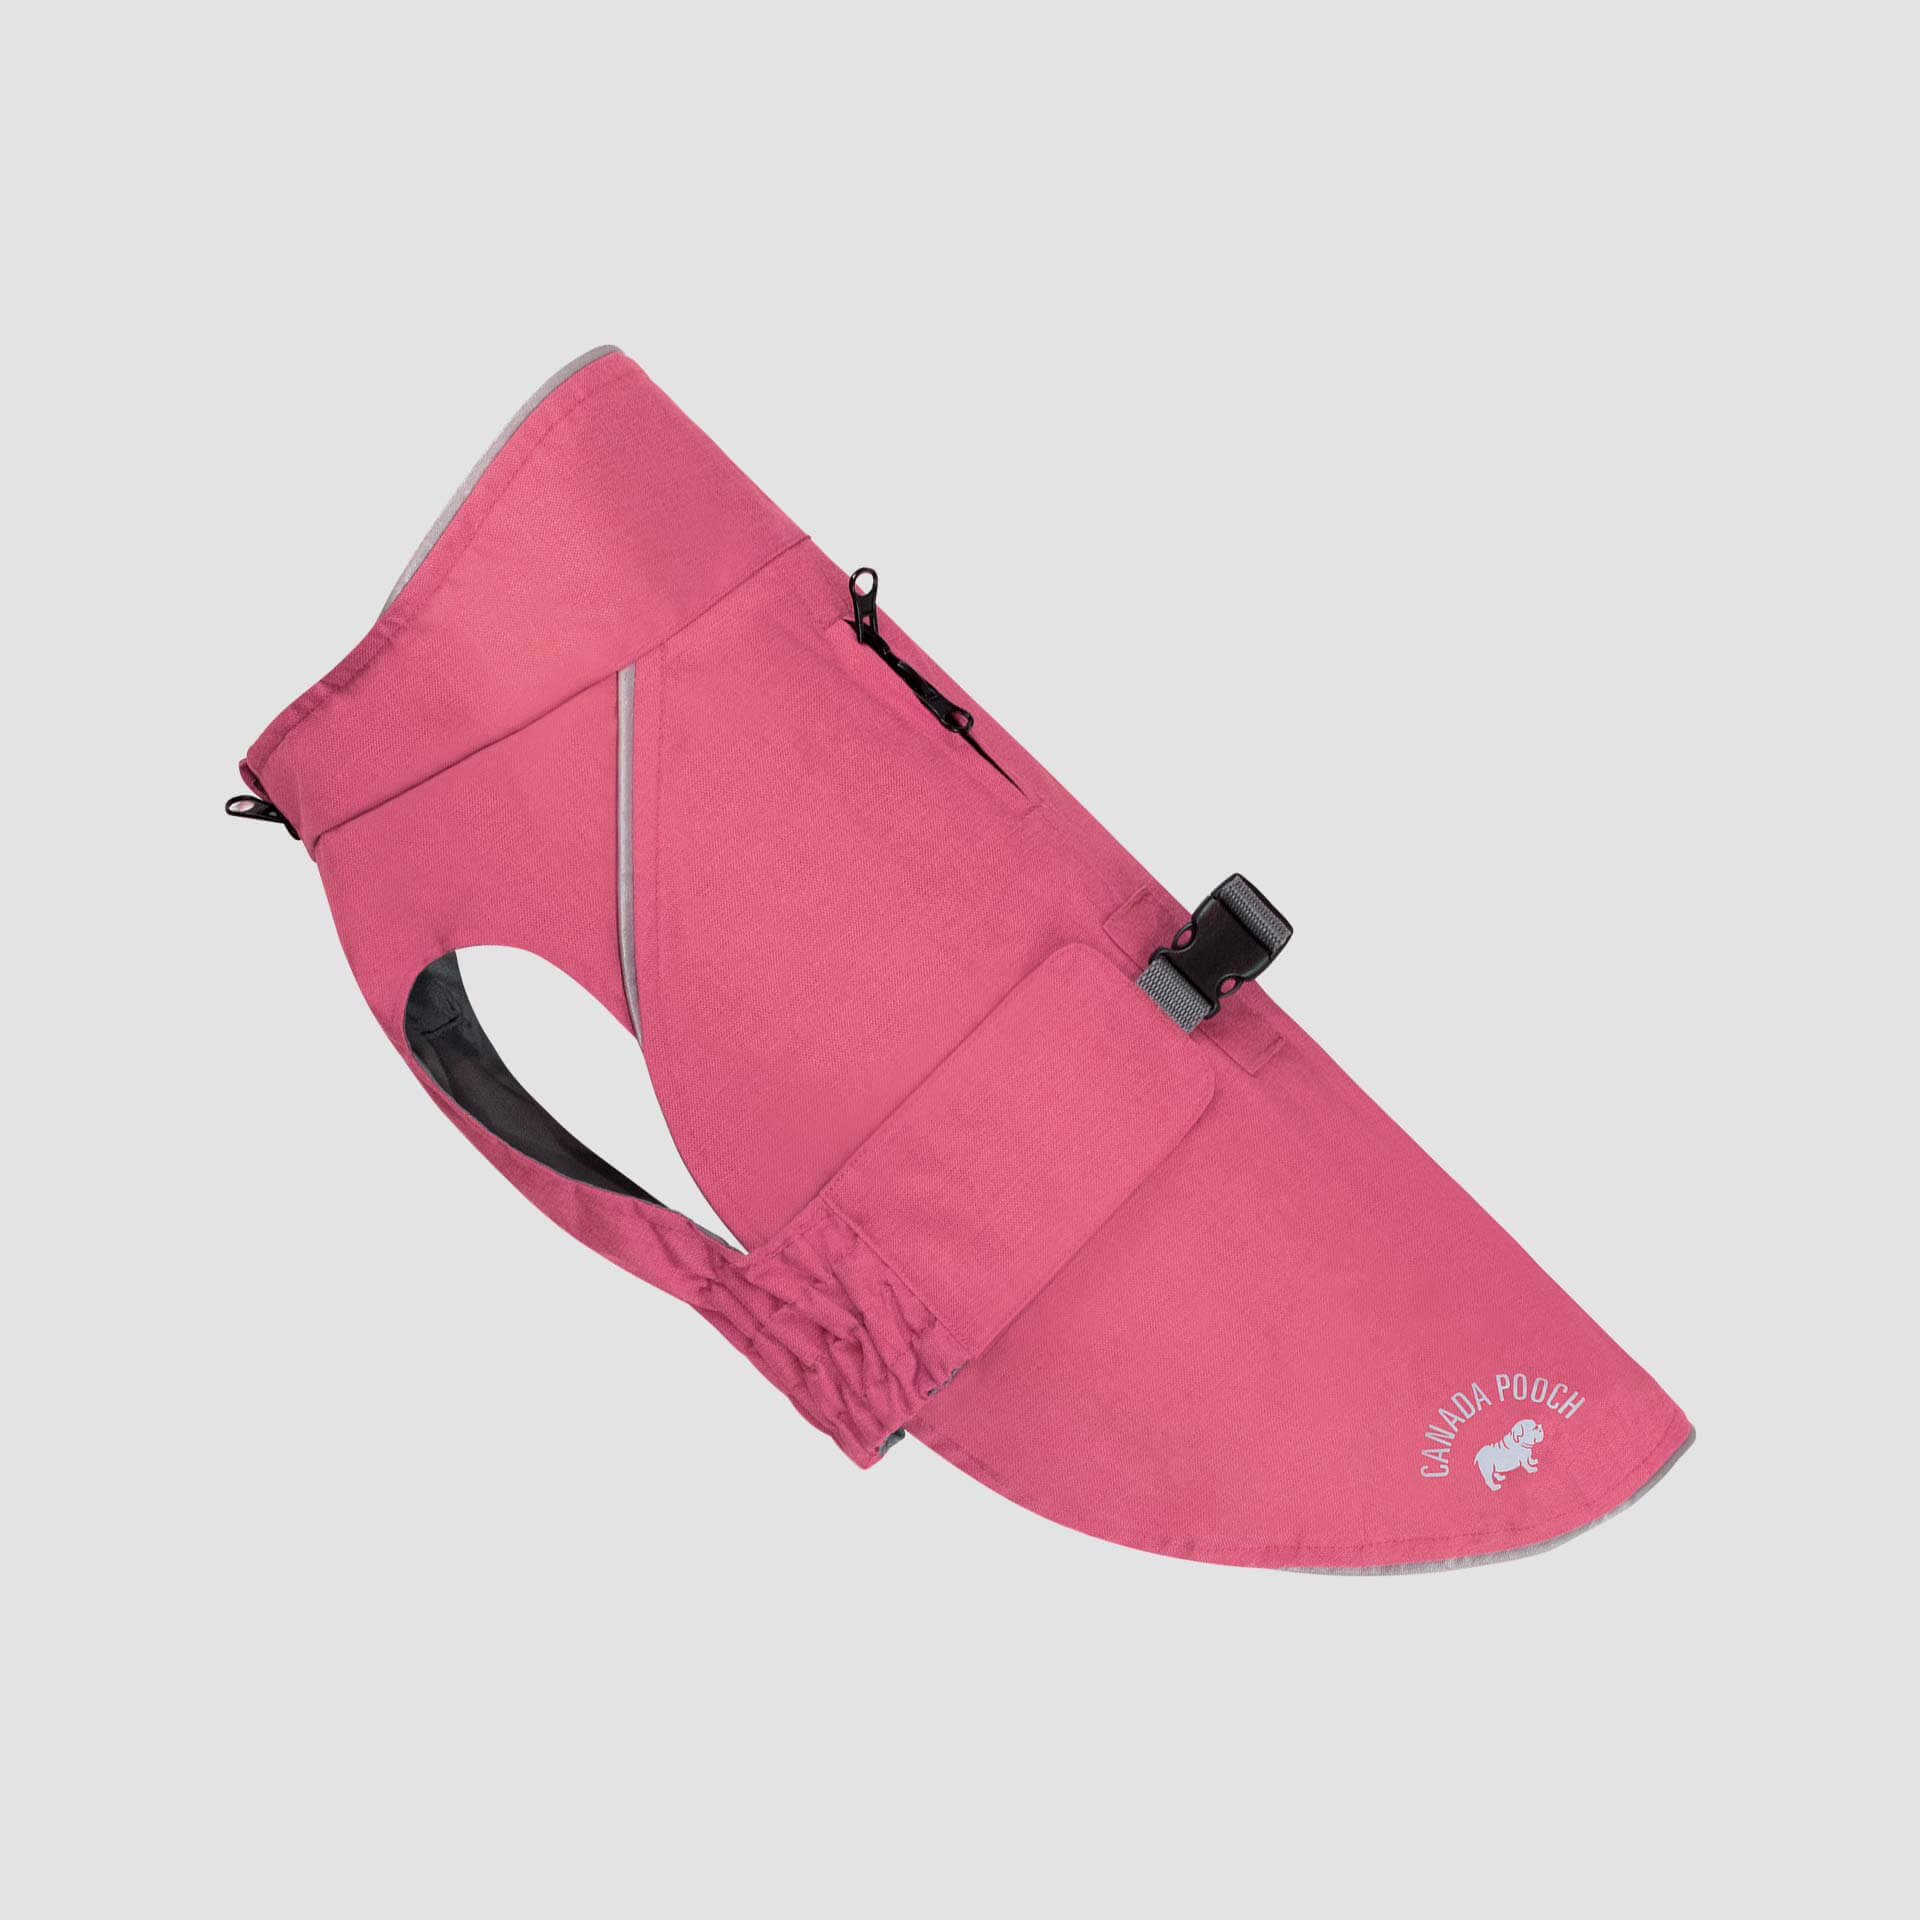 canada-pooch-pink-expedition-dog-coat-product-shot—color_98